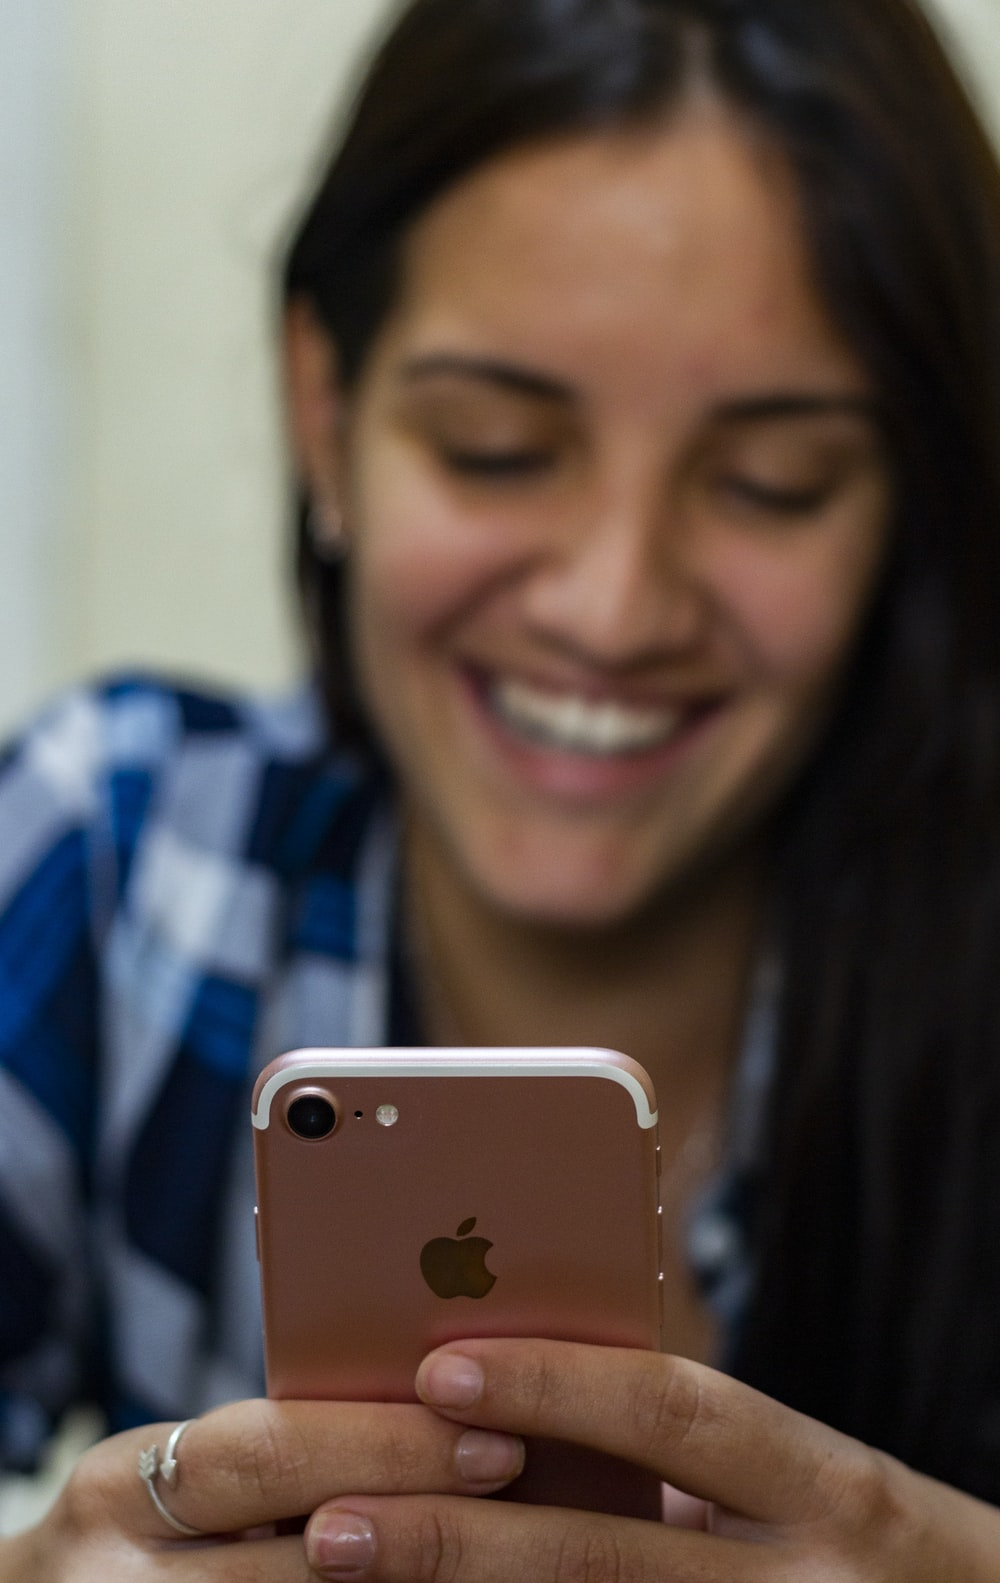 woman in blue and white plaid shirt holding gold iphone 6